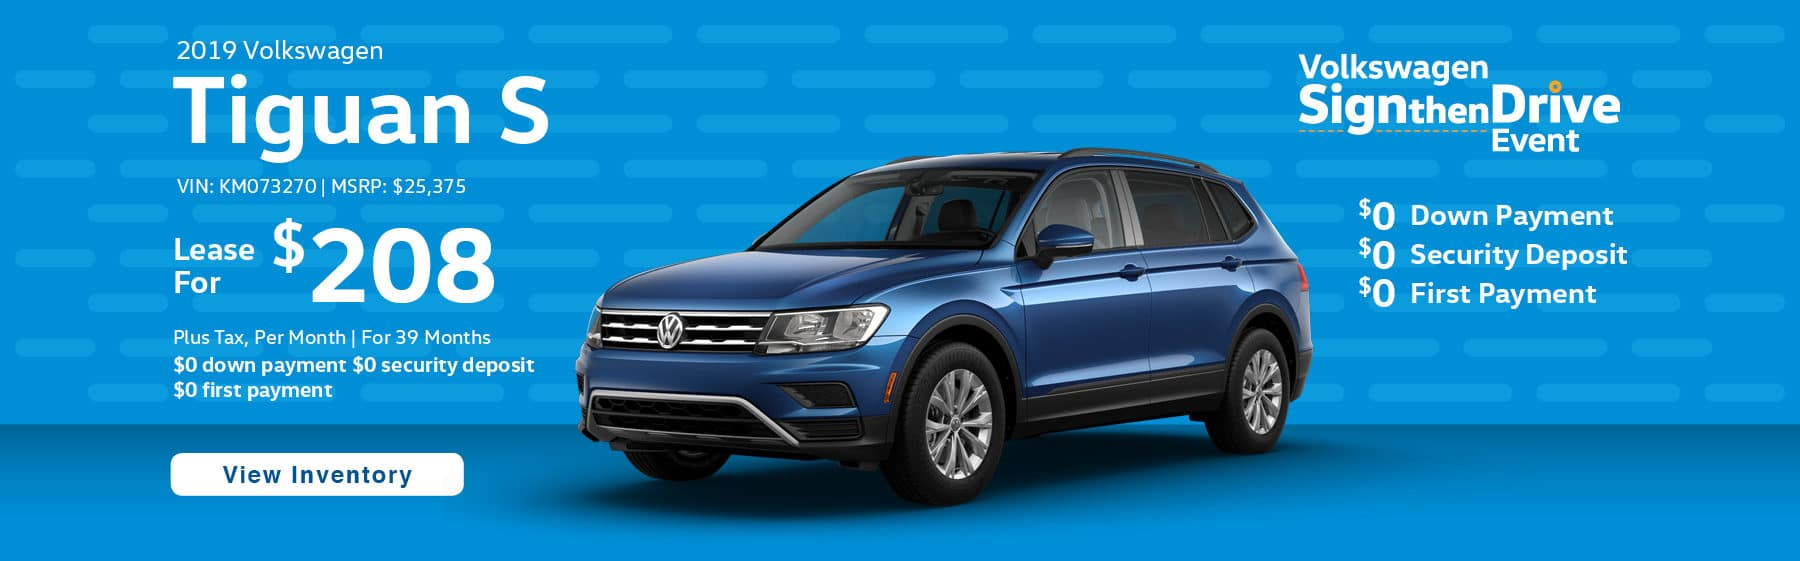 Lease the 2019 Volkswagen Tiguan S for $208 plus tax for 39 months. $0 Down payment required.